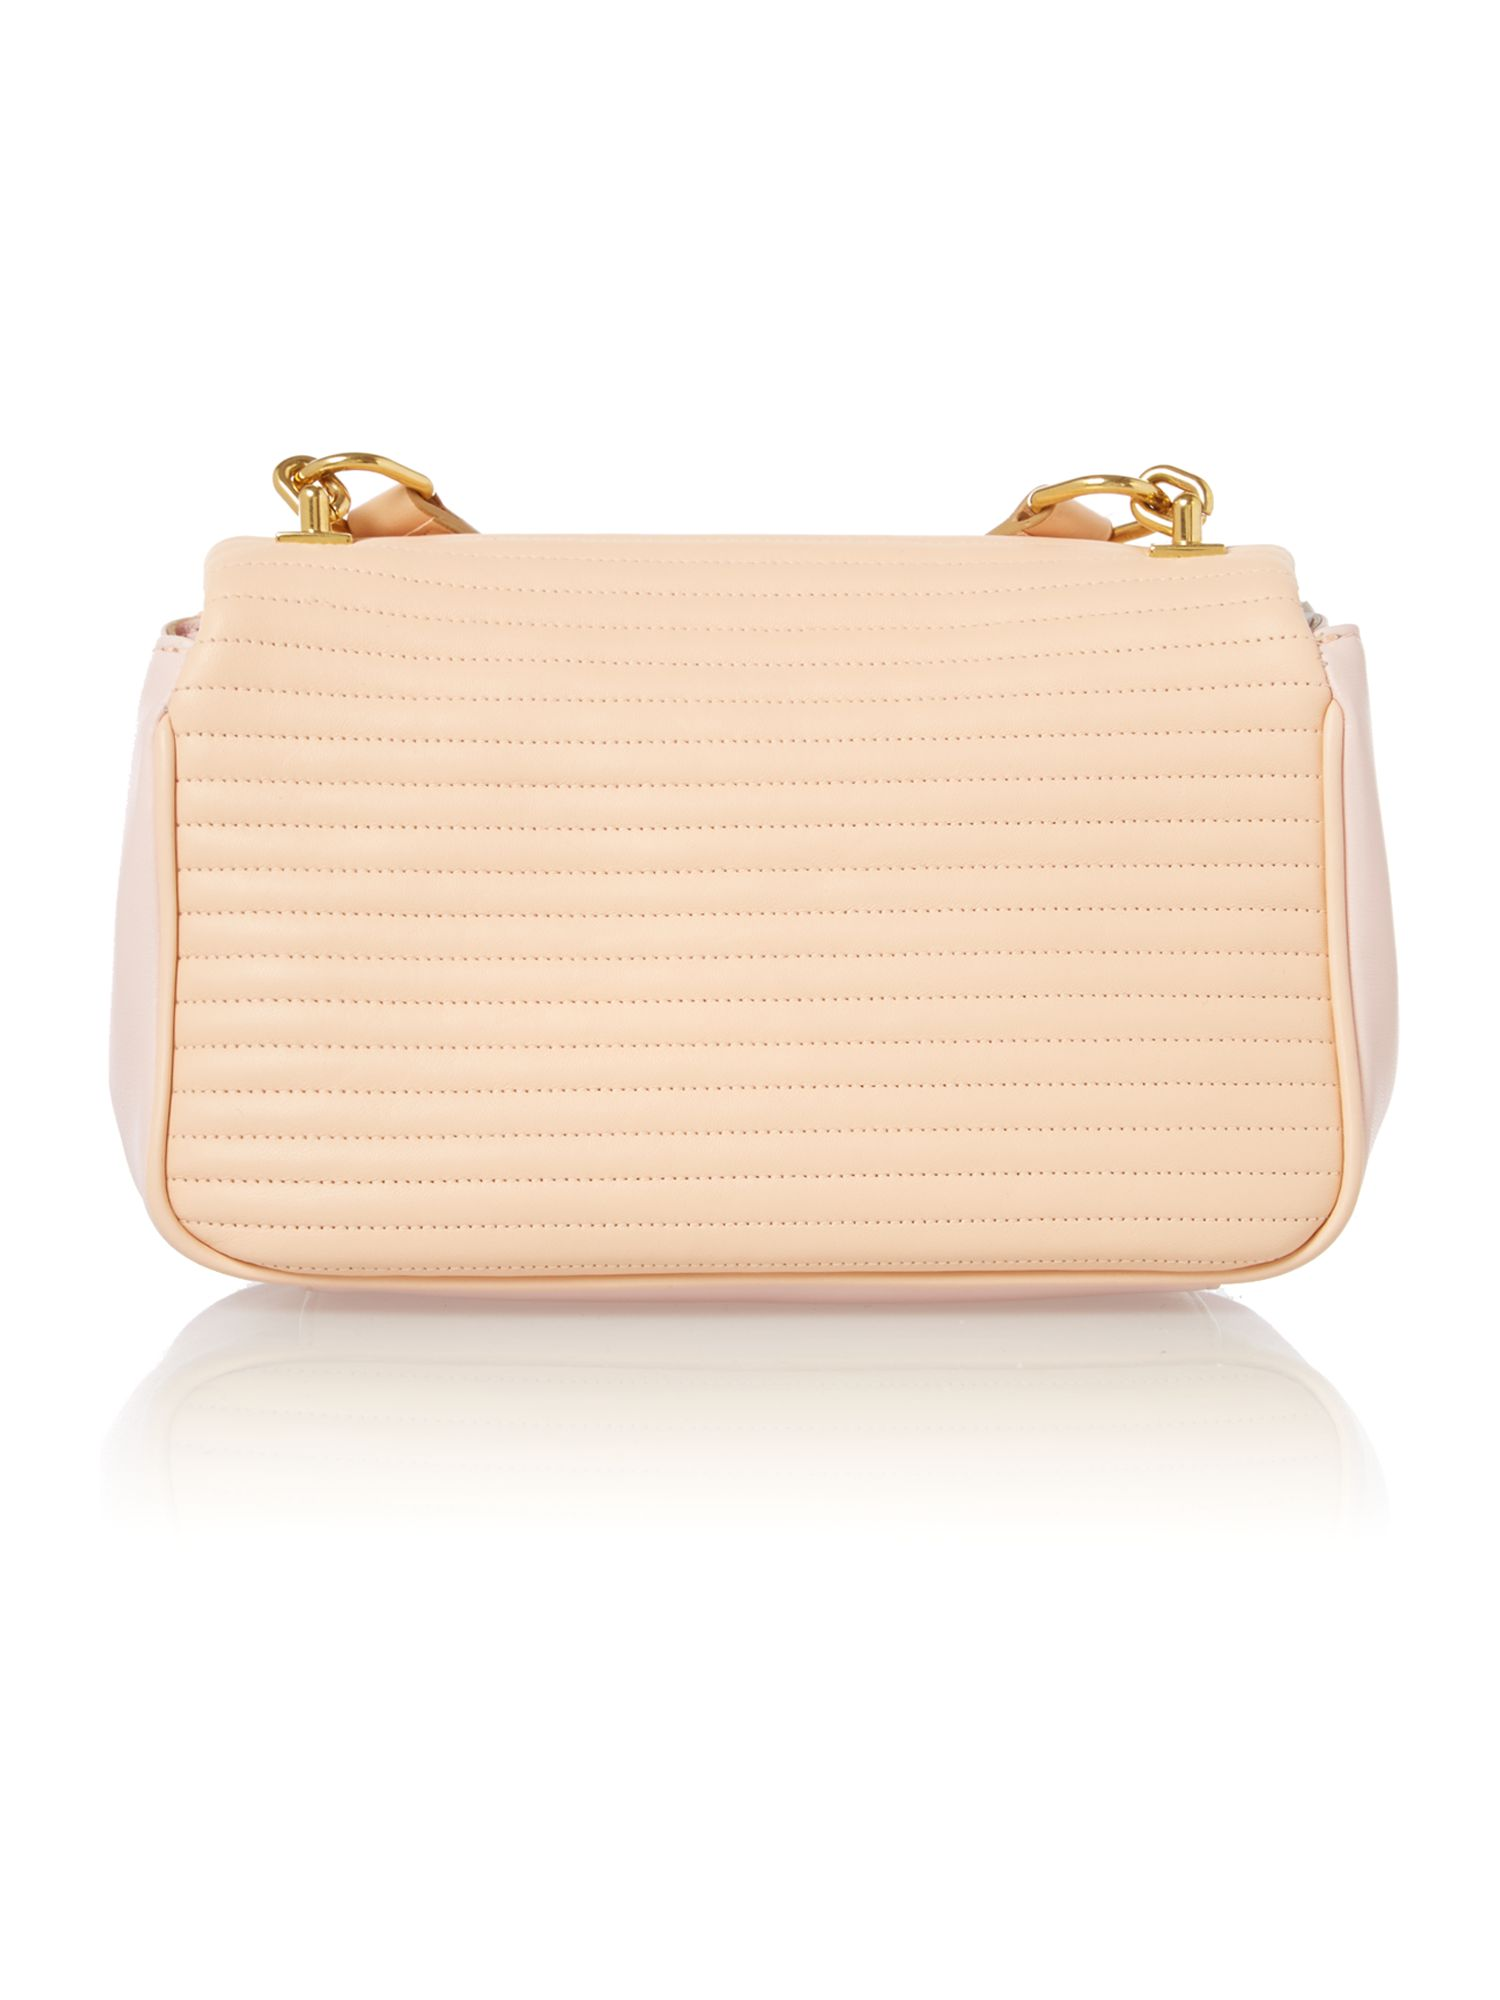 Jean pink small shoulder bag